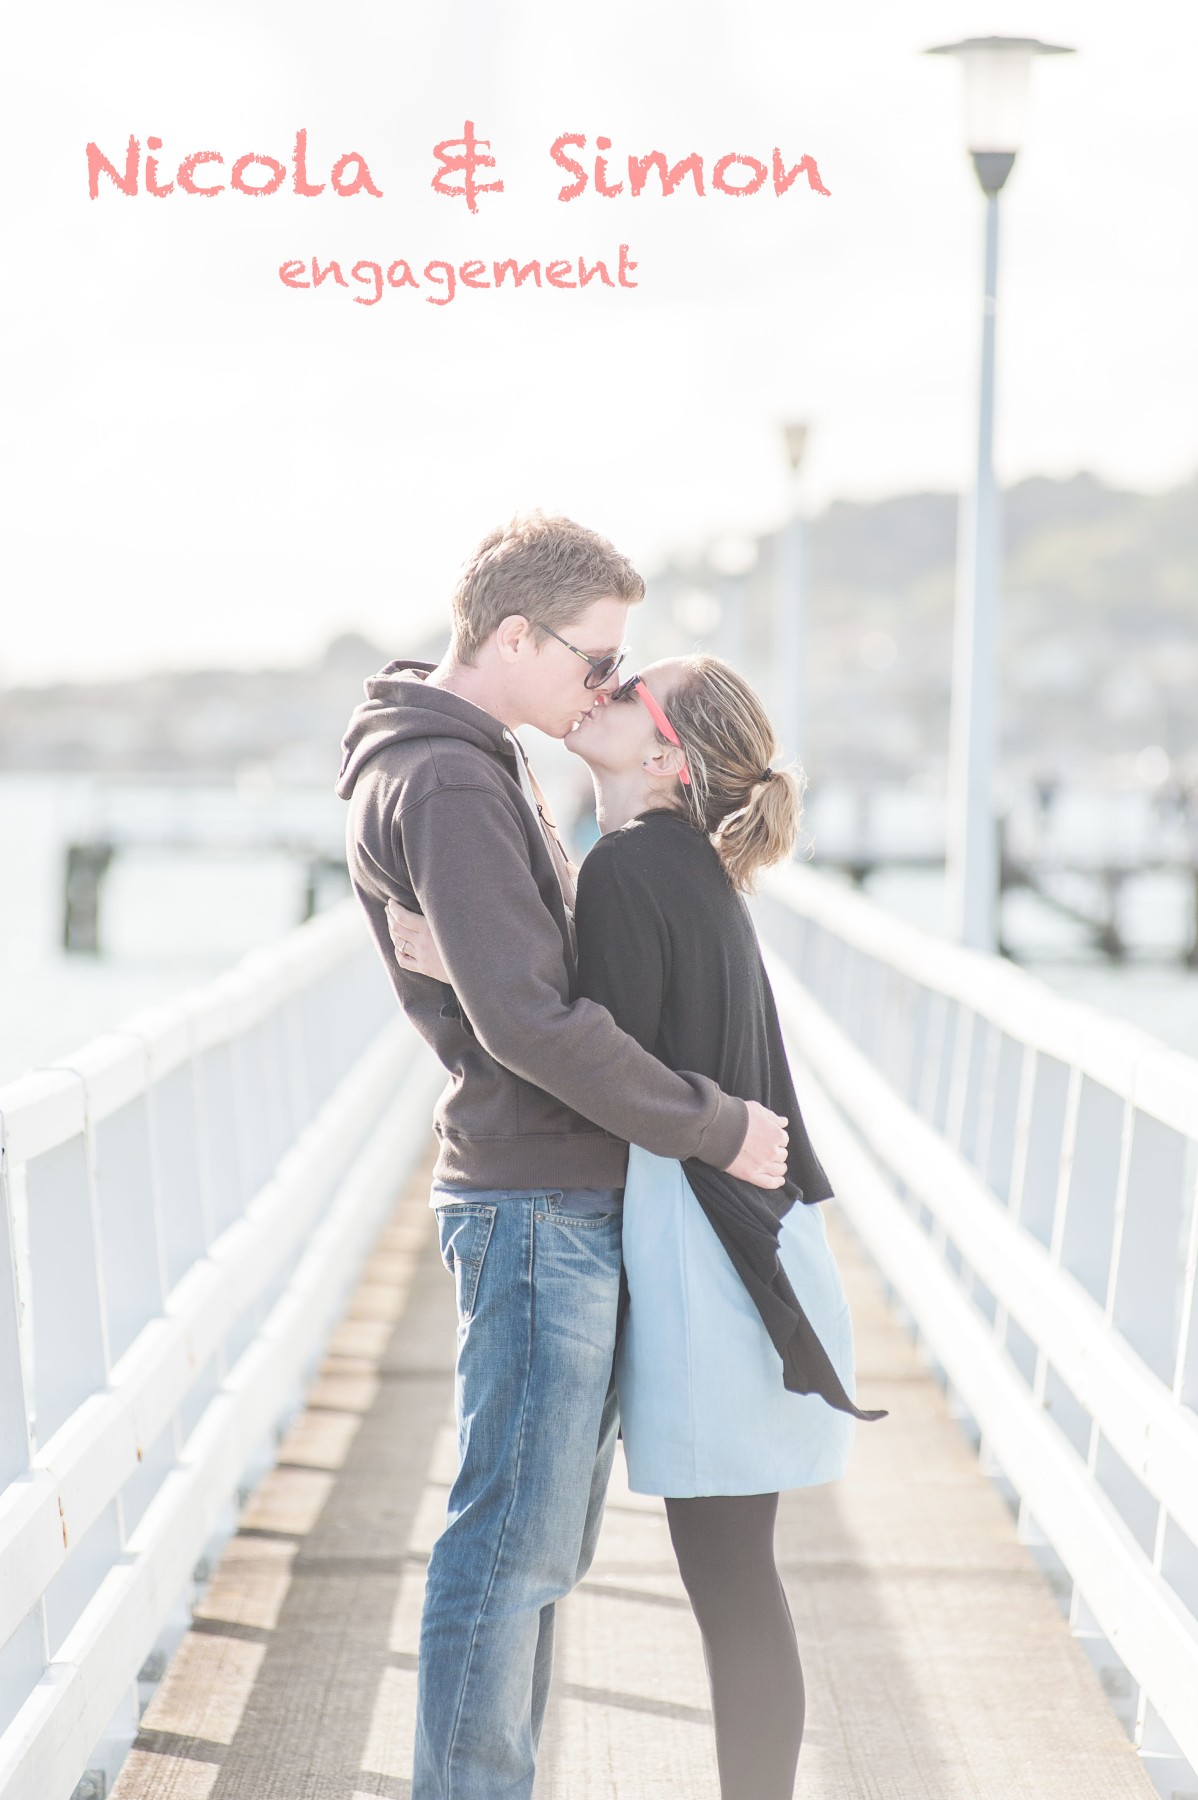 nicola-simon-engagement-michael-savage-okahu-bay-by-raduban-photography-auckland-new-zealand-featured